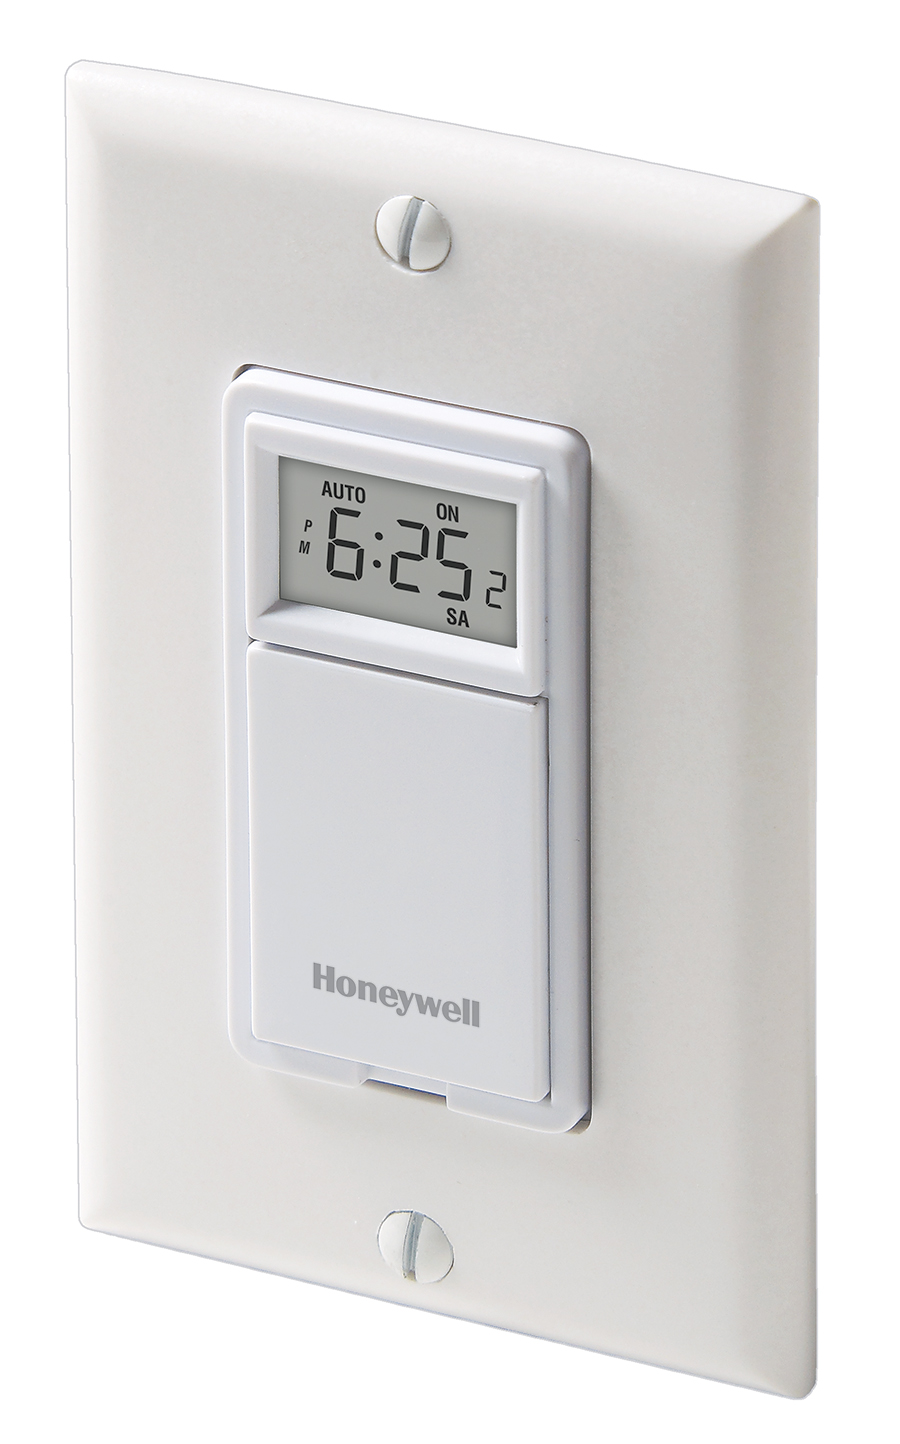 Honeywell 7 Day Programmable Light Switch Timer White Rpls530a1038 How Christmas Tree Lights And Circuit Work U